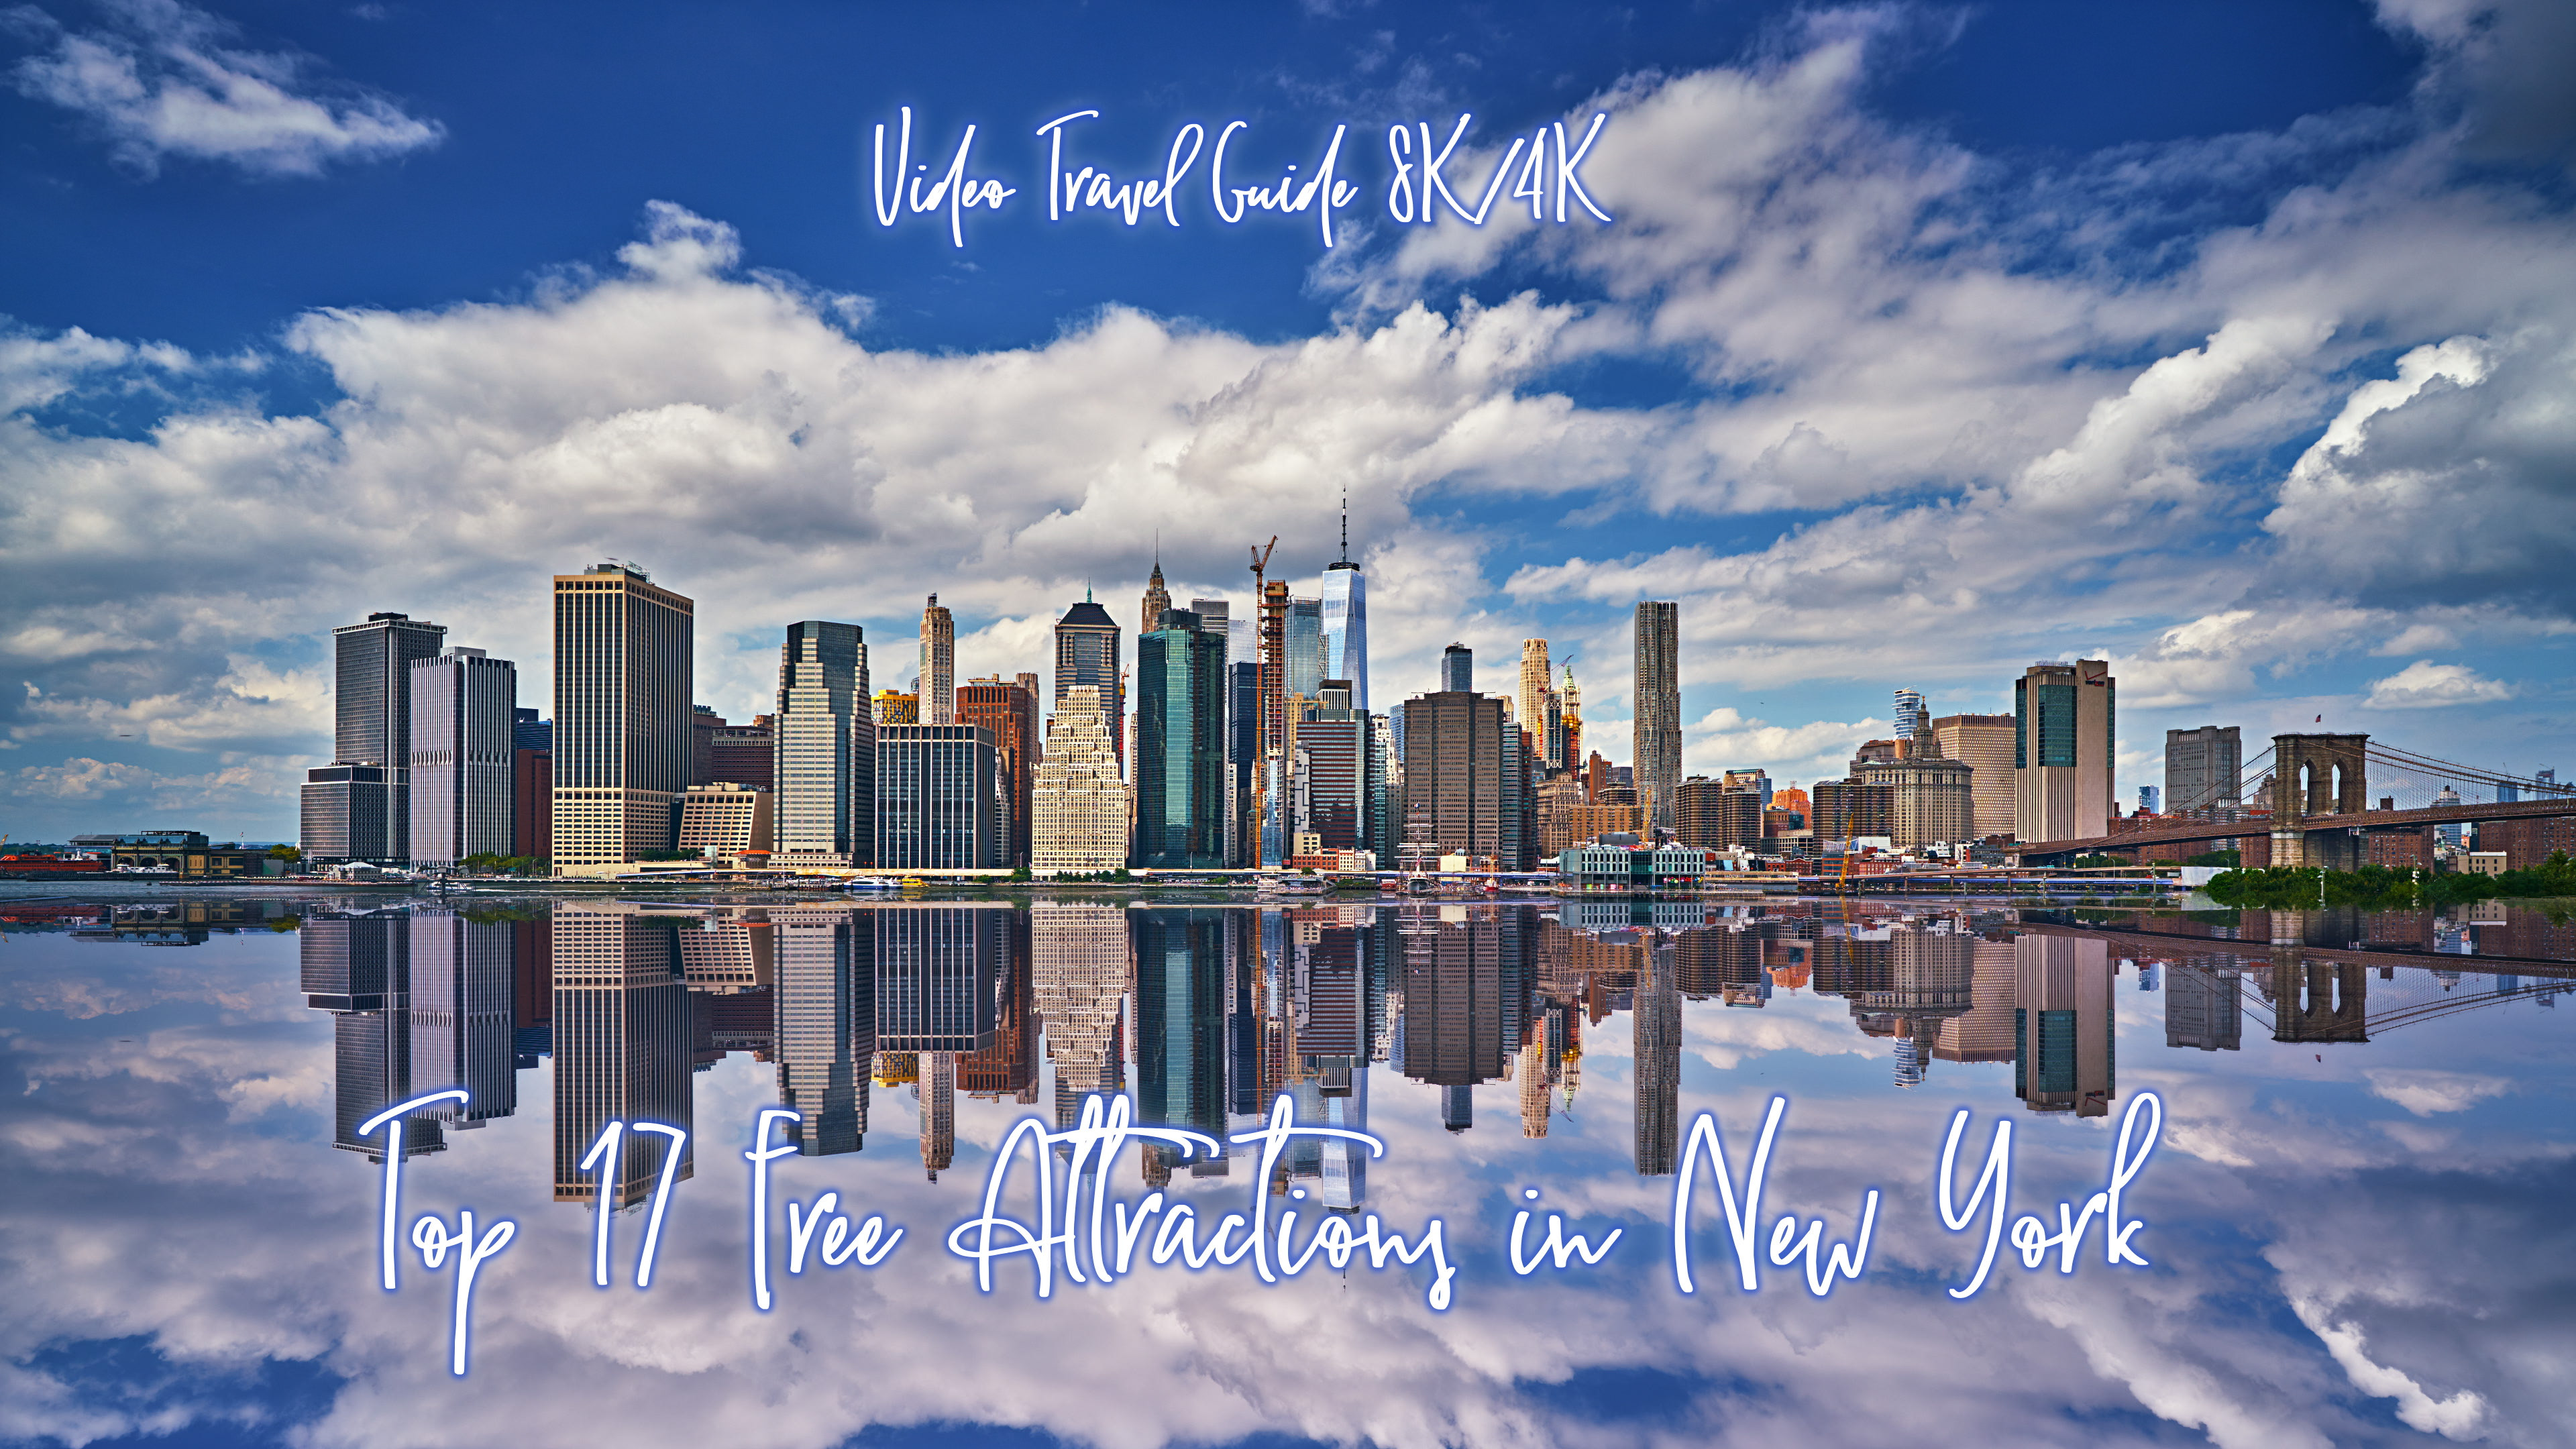 Top 17 Free Attractions in New York